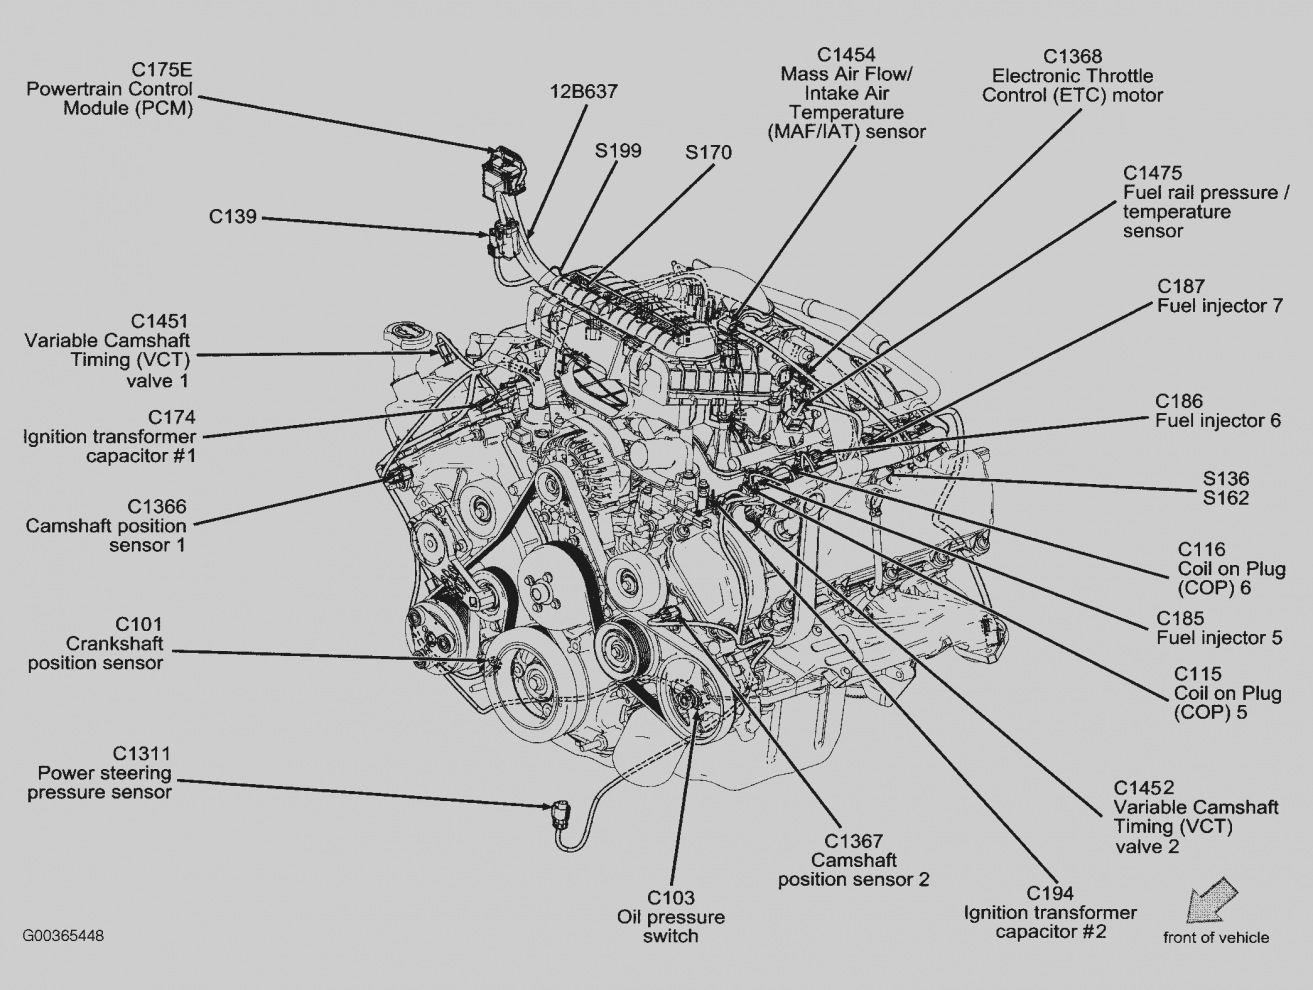 hight resolution of 2011 5 0 ford f 150 engine diagram wiring diagram for you 2011 5 0 f150 engine coolant diagrams